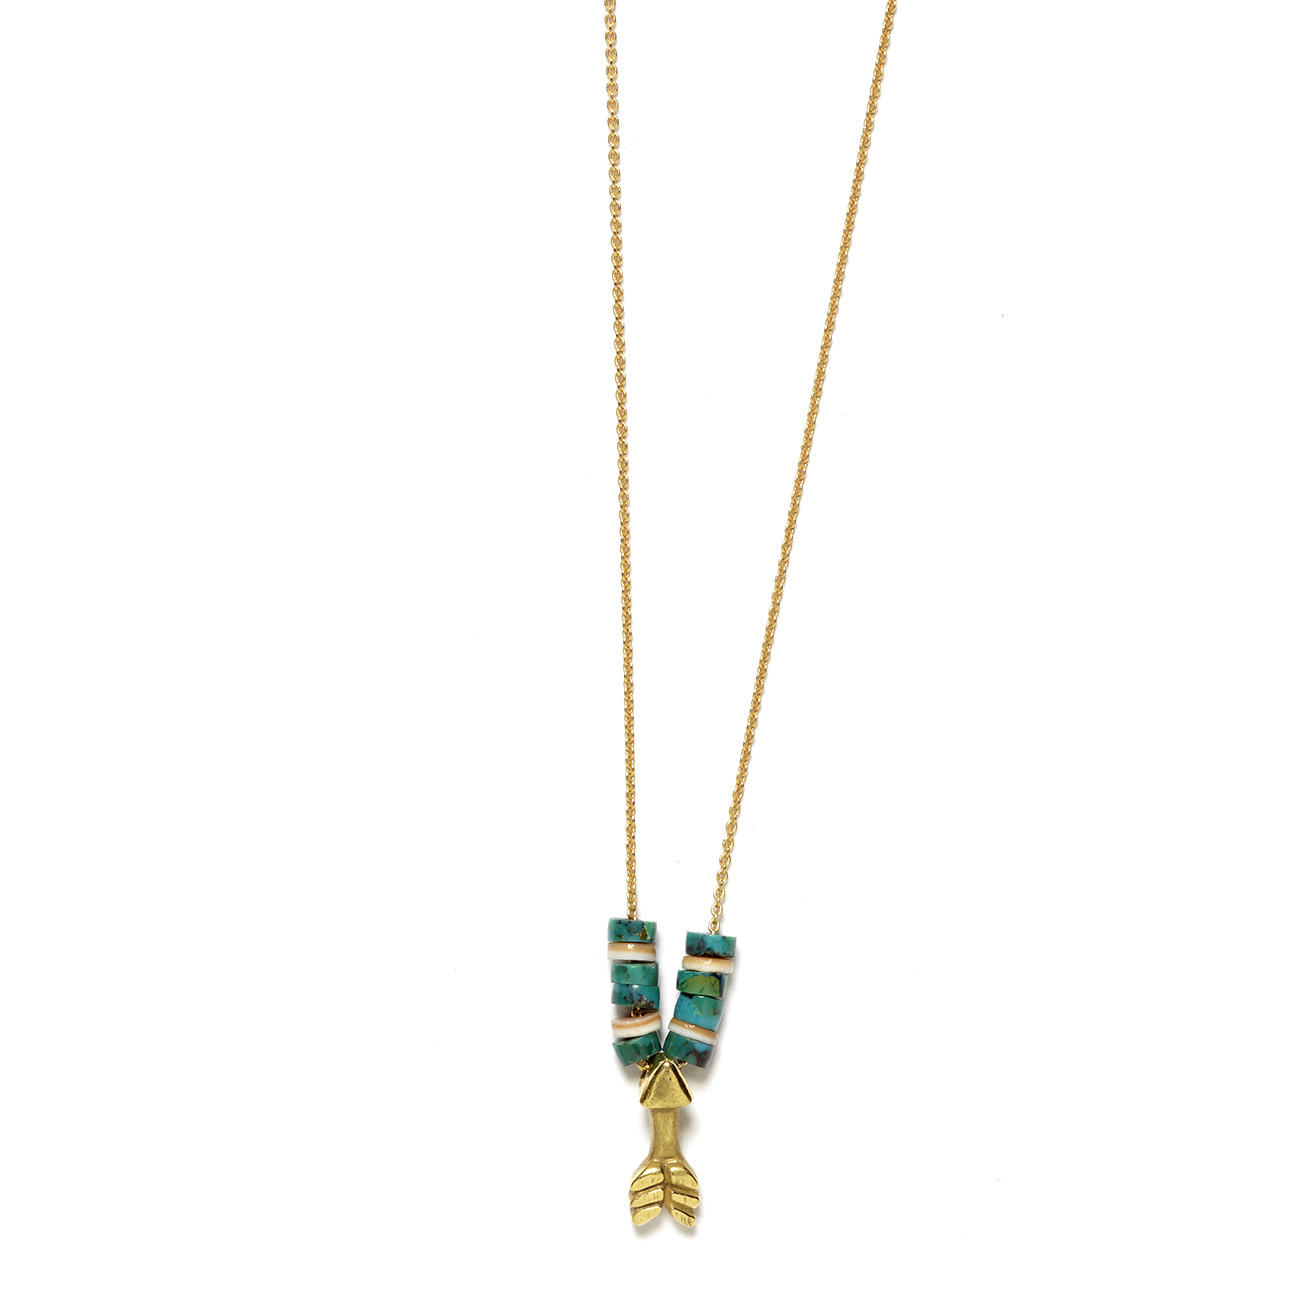 Elisa Solomon - Yellow Gold Arrow Necklace With Beads